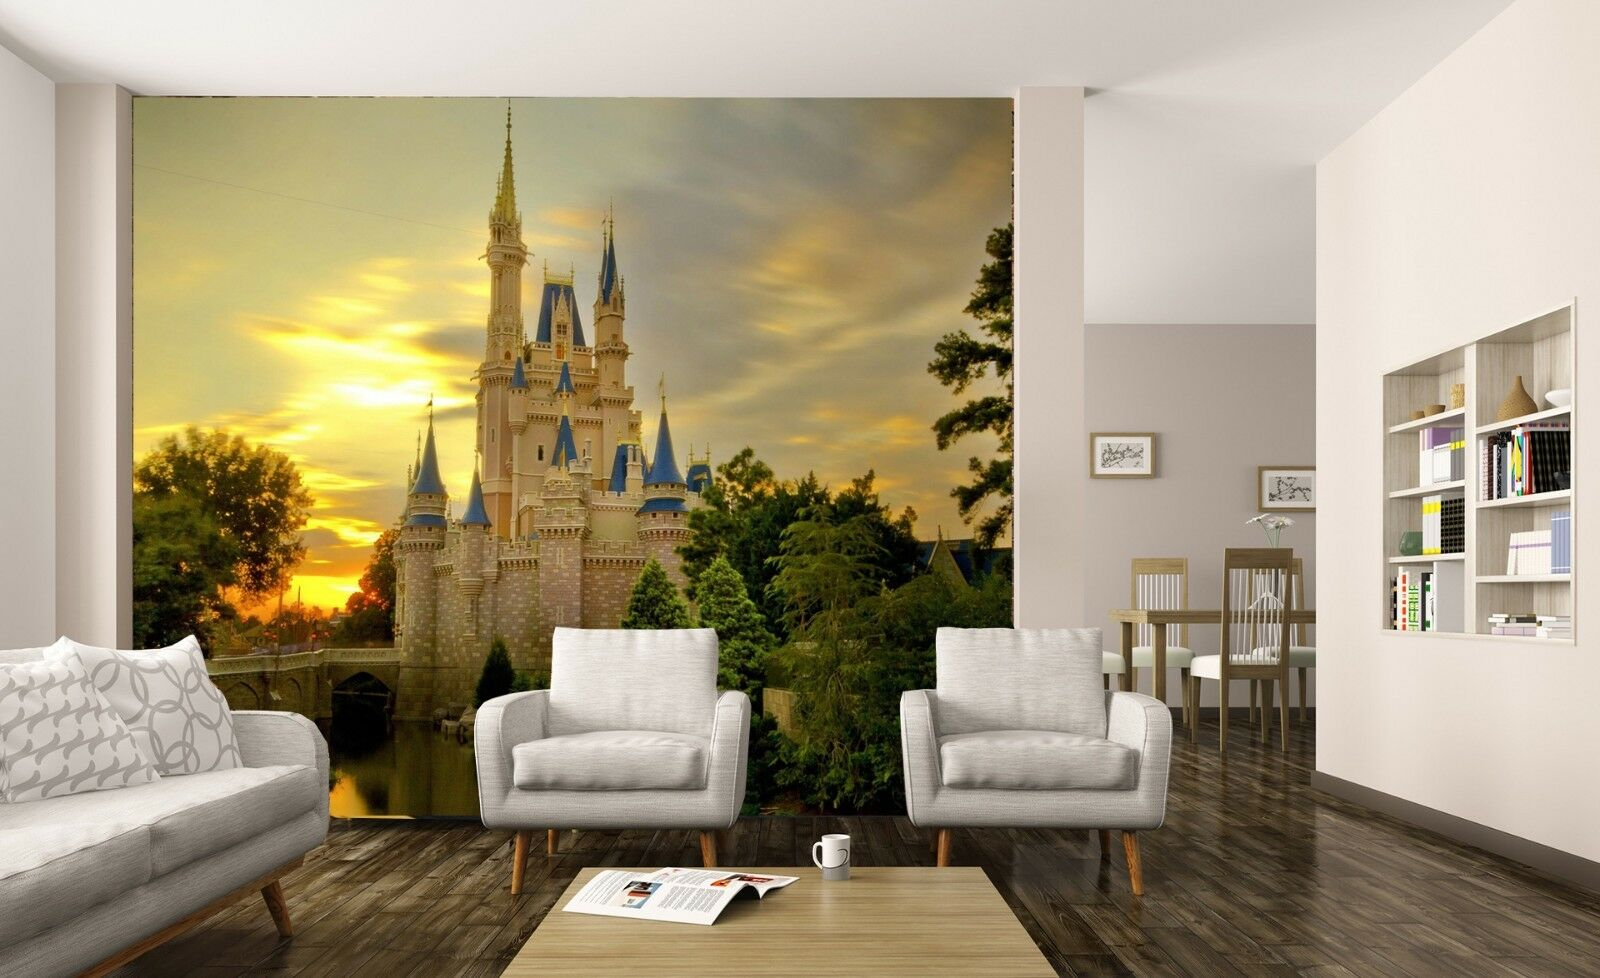 Details Sur Disney Castle Papier Peint Photo Enfants Fille Chambre Poster A Faire Soi Meme Decoration Afficher Le Titre D Origine